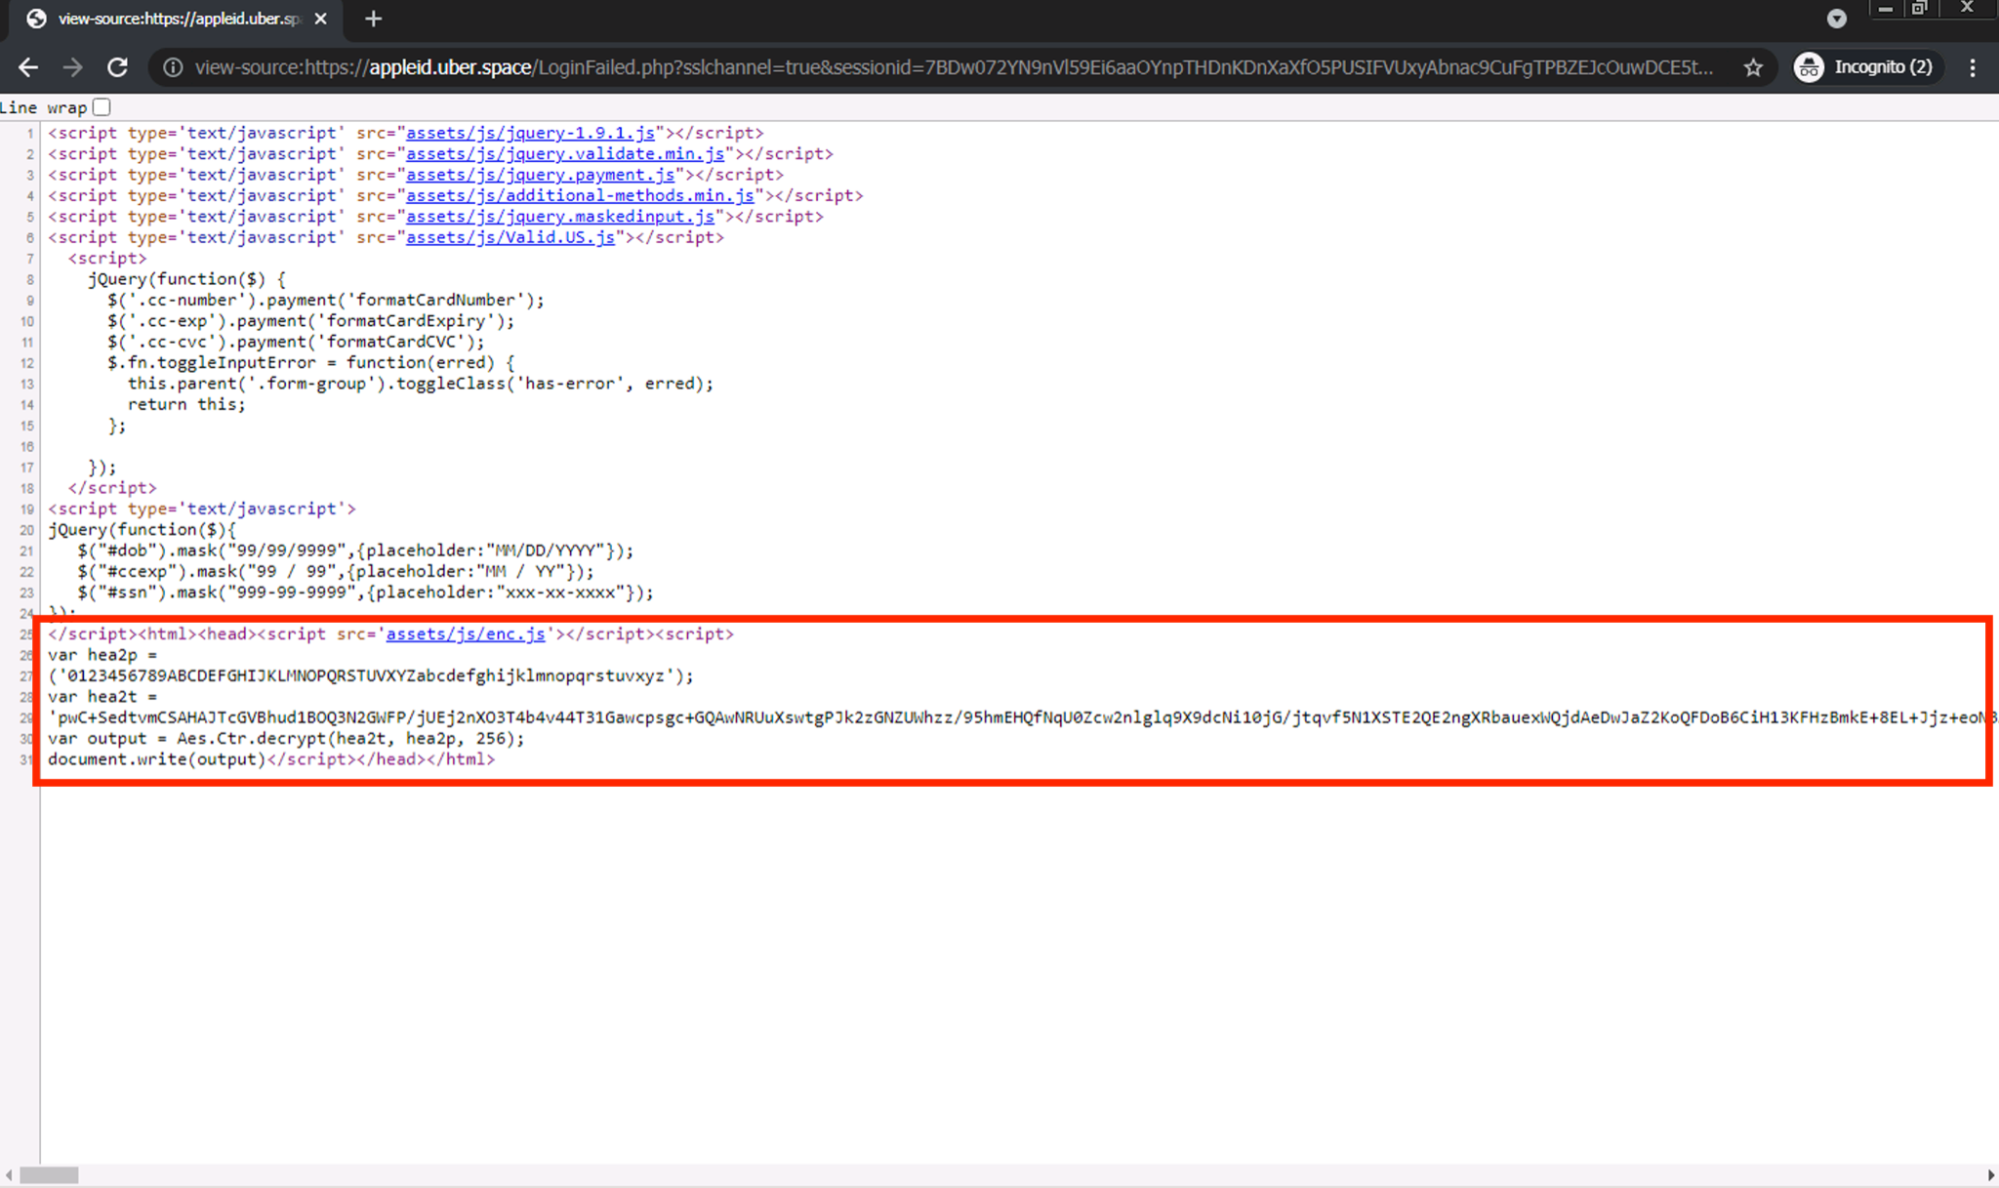 After investigating the source code behind the page, we see that most of the page content does not exist directly within the main body of the HTML. Rather, there is a large script tag at the bottom of the HTML source, as shown. This is an example of the JavaScript-based phishing approach discussed here.